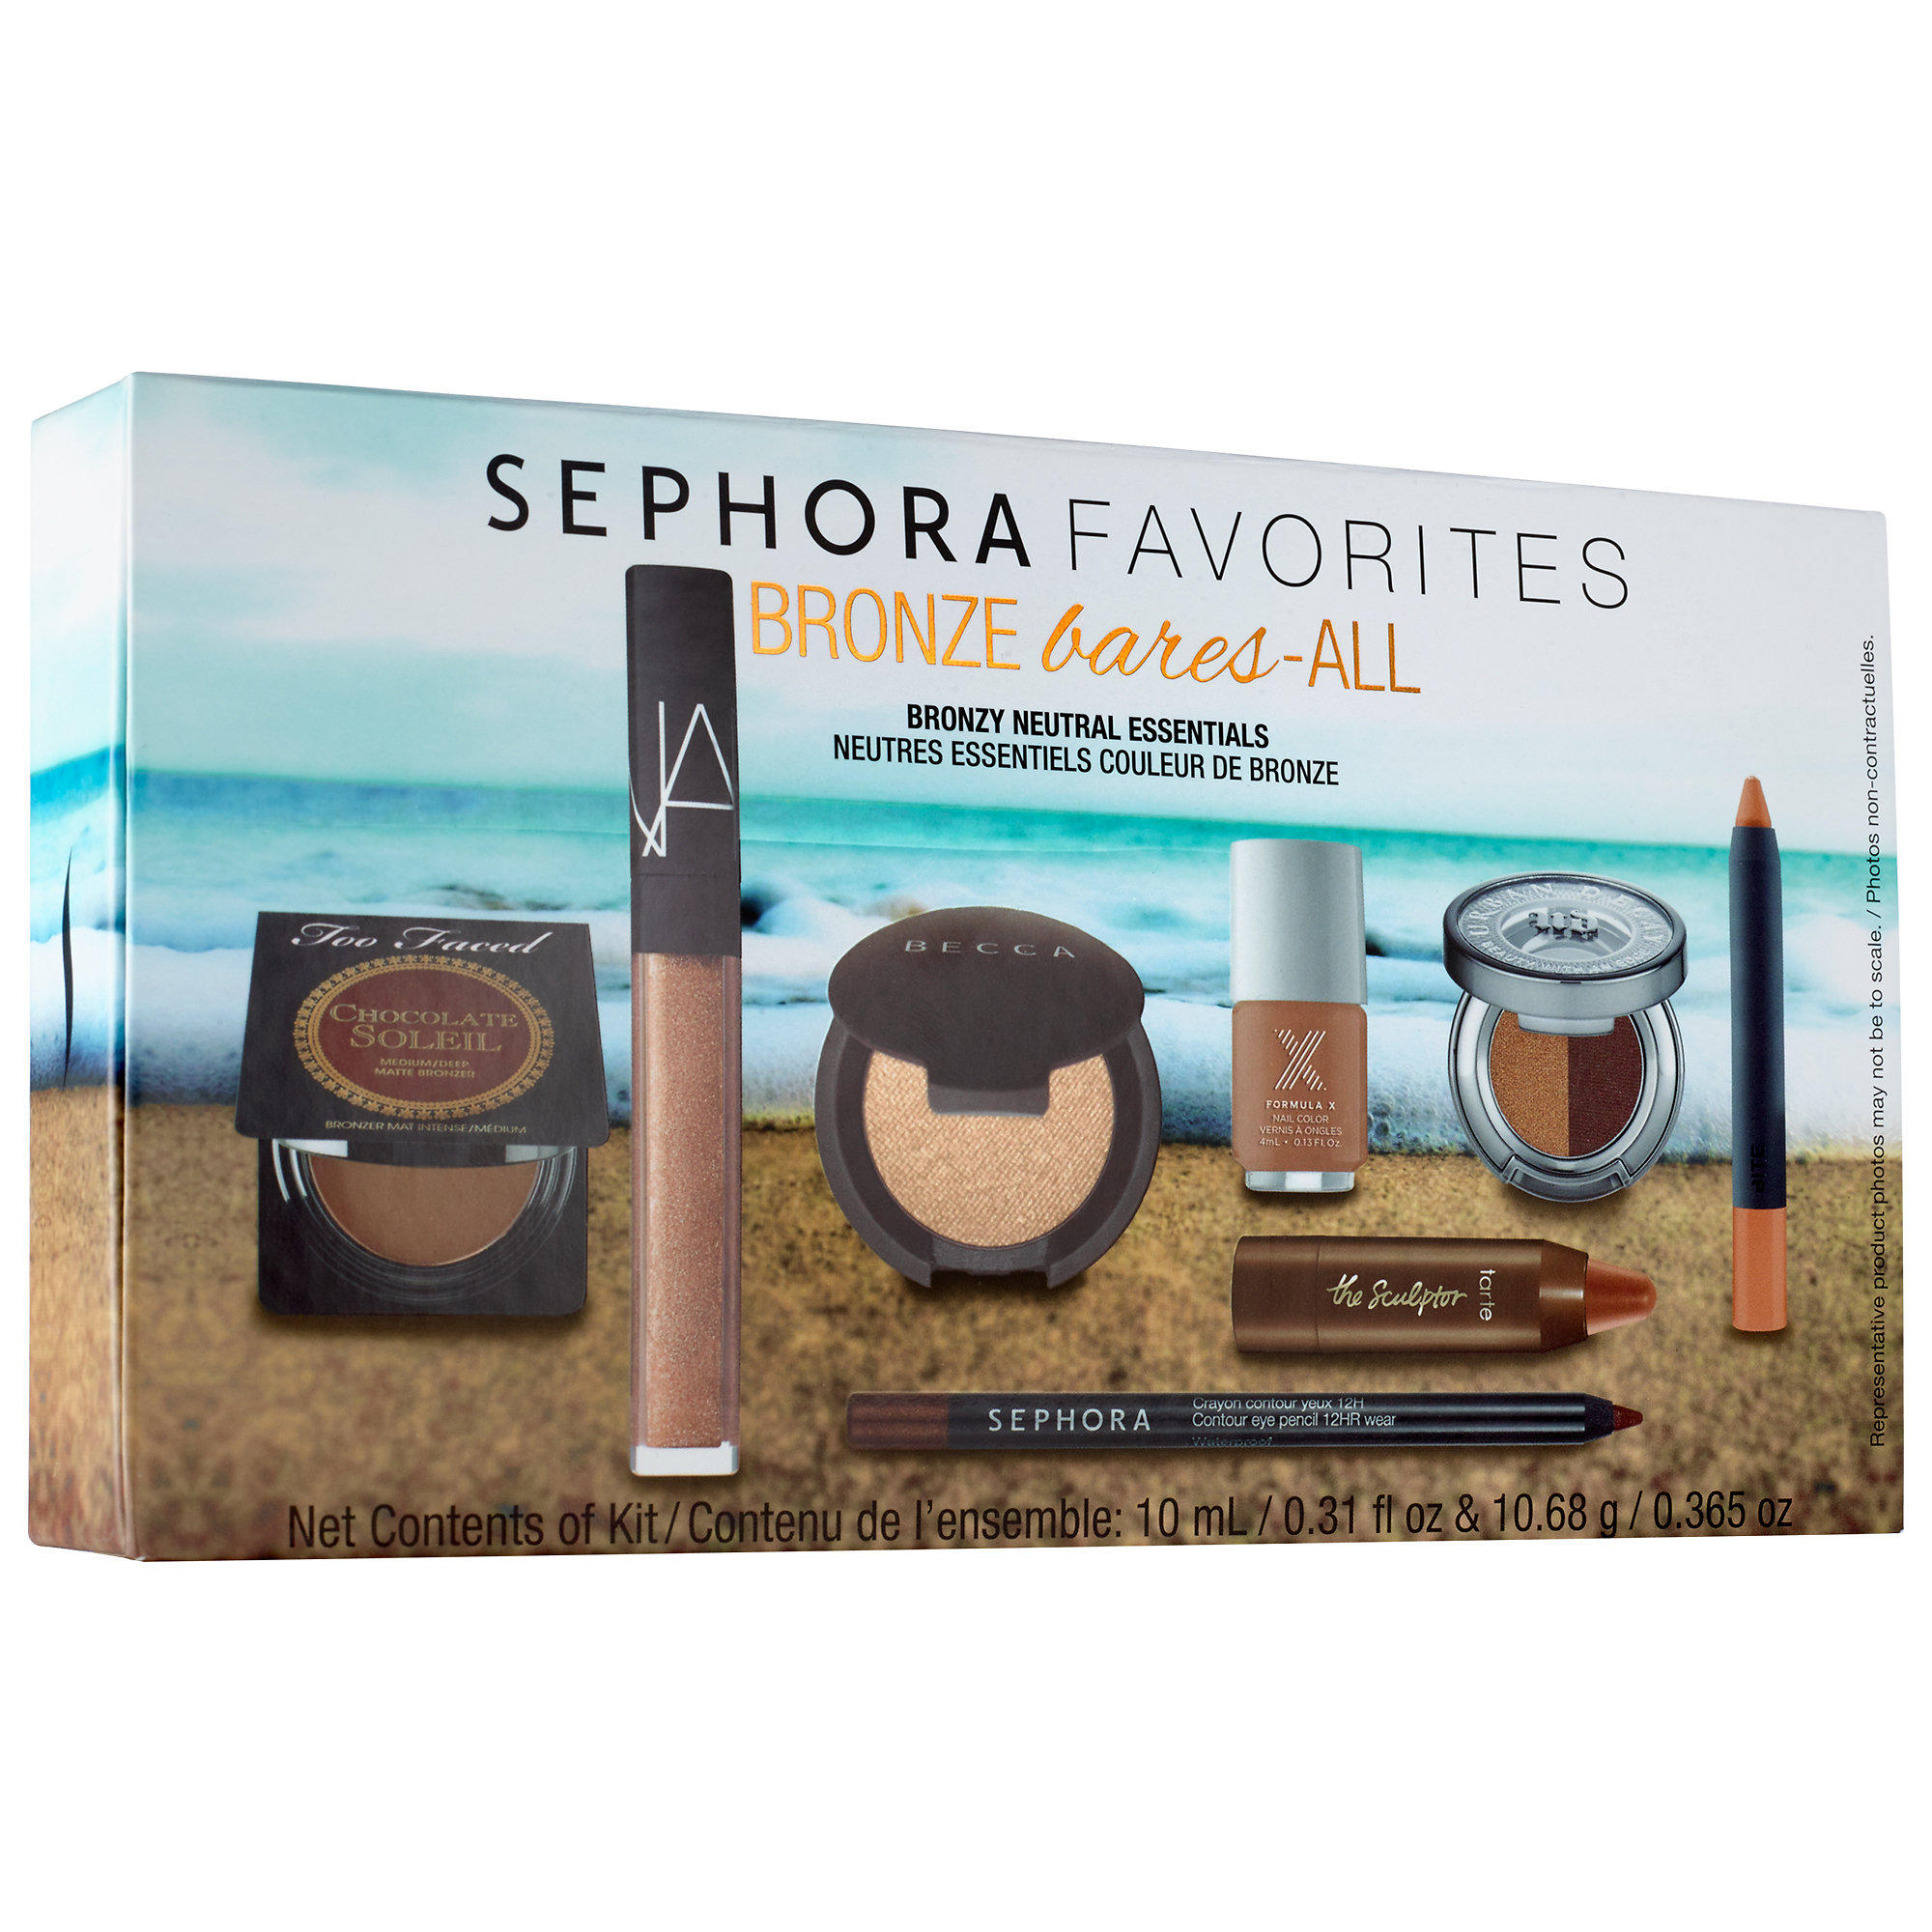 Sephora launched New Sephora Favorite Bronze Bares All Set